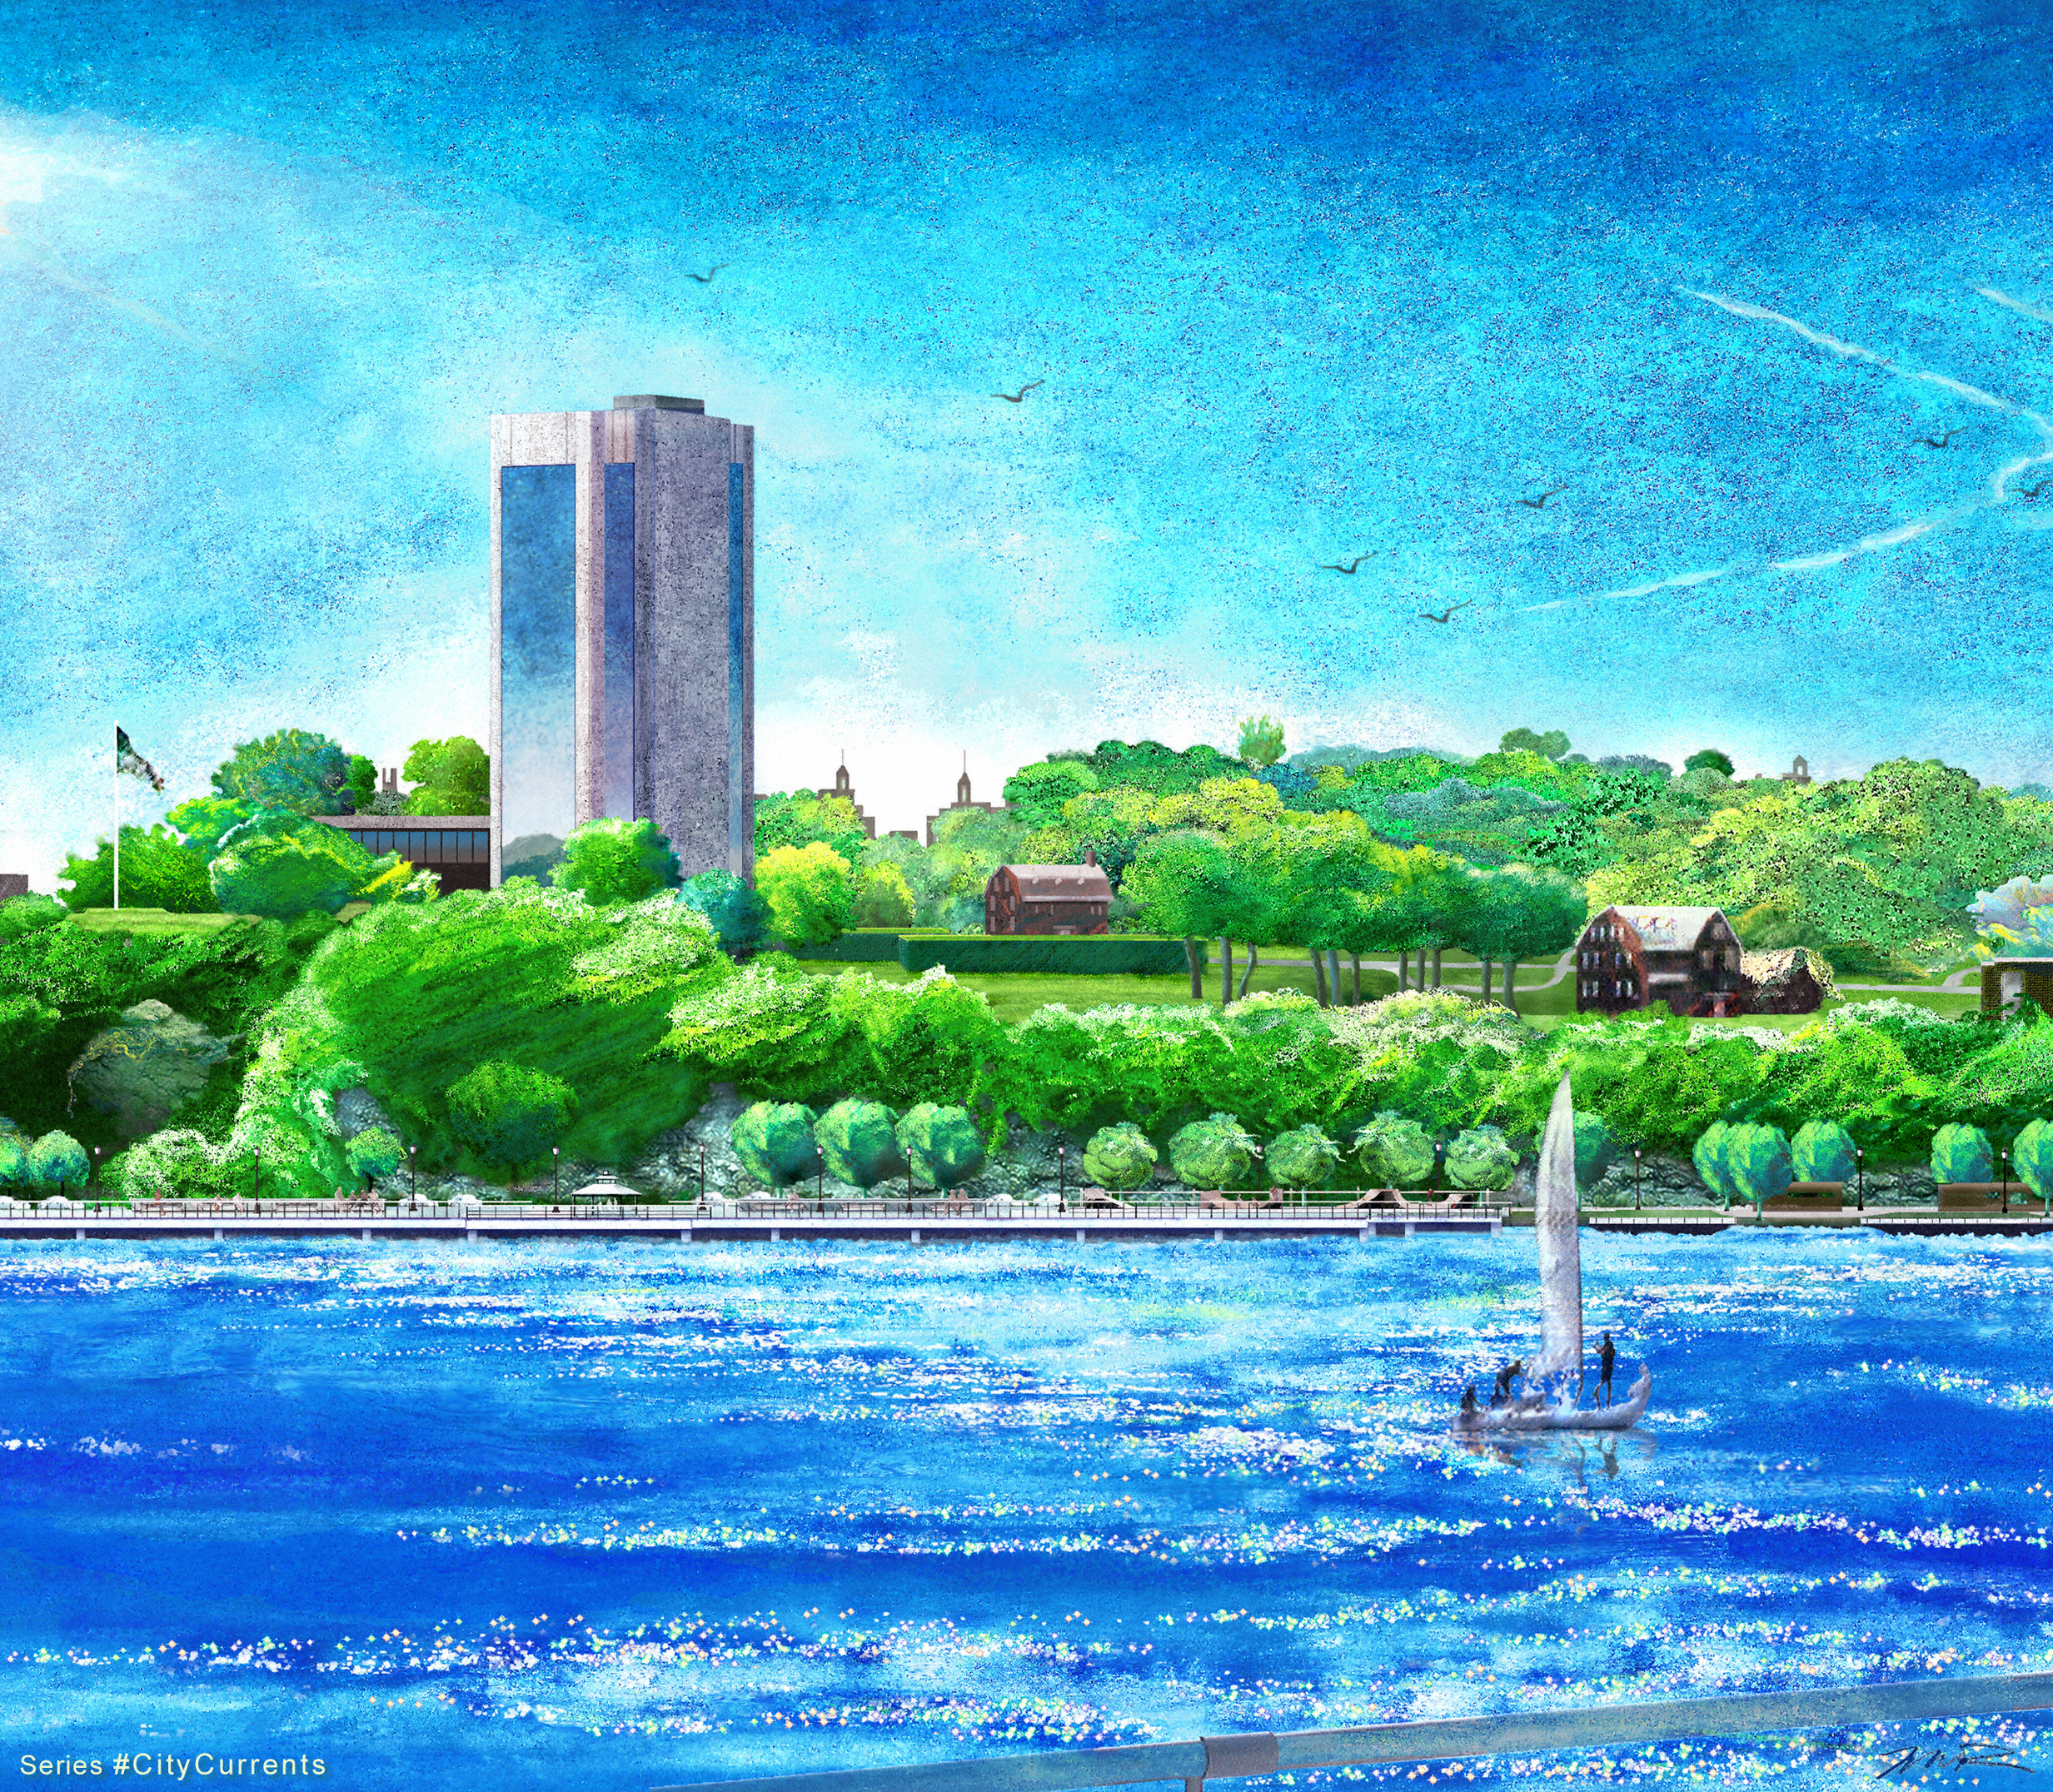 River City I.T. Campus Lscp - Hard Pastel River of PXLs_32 x 48 in